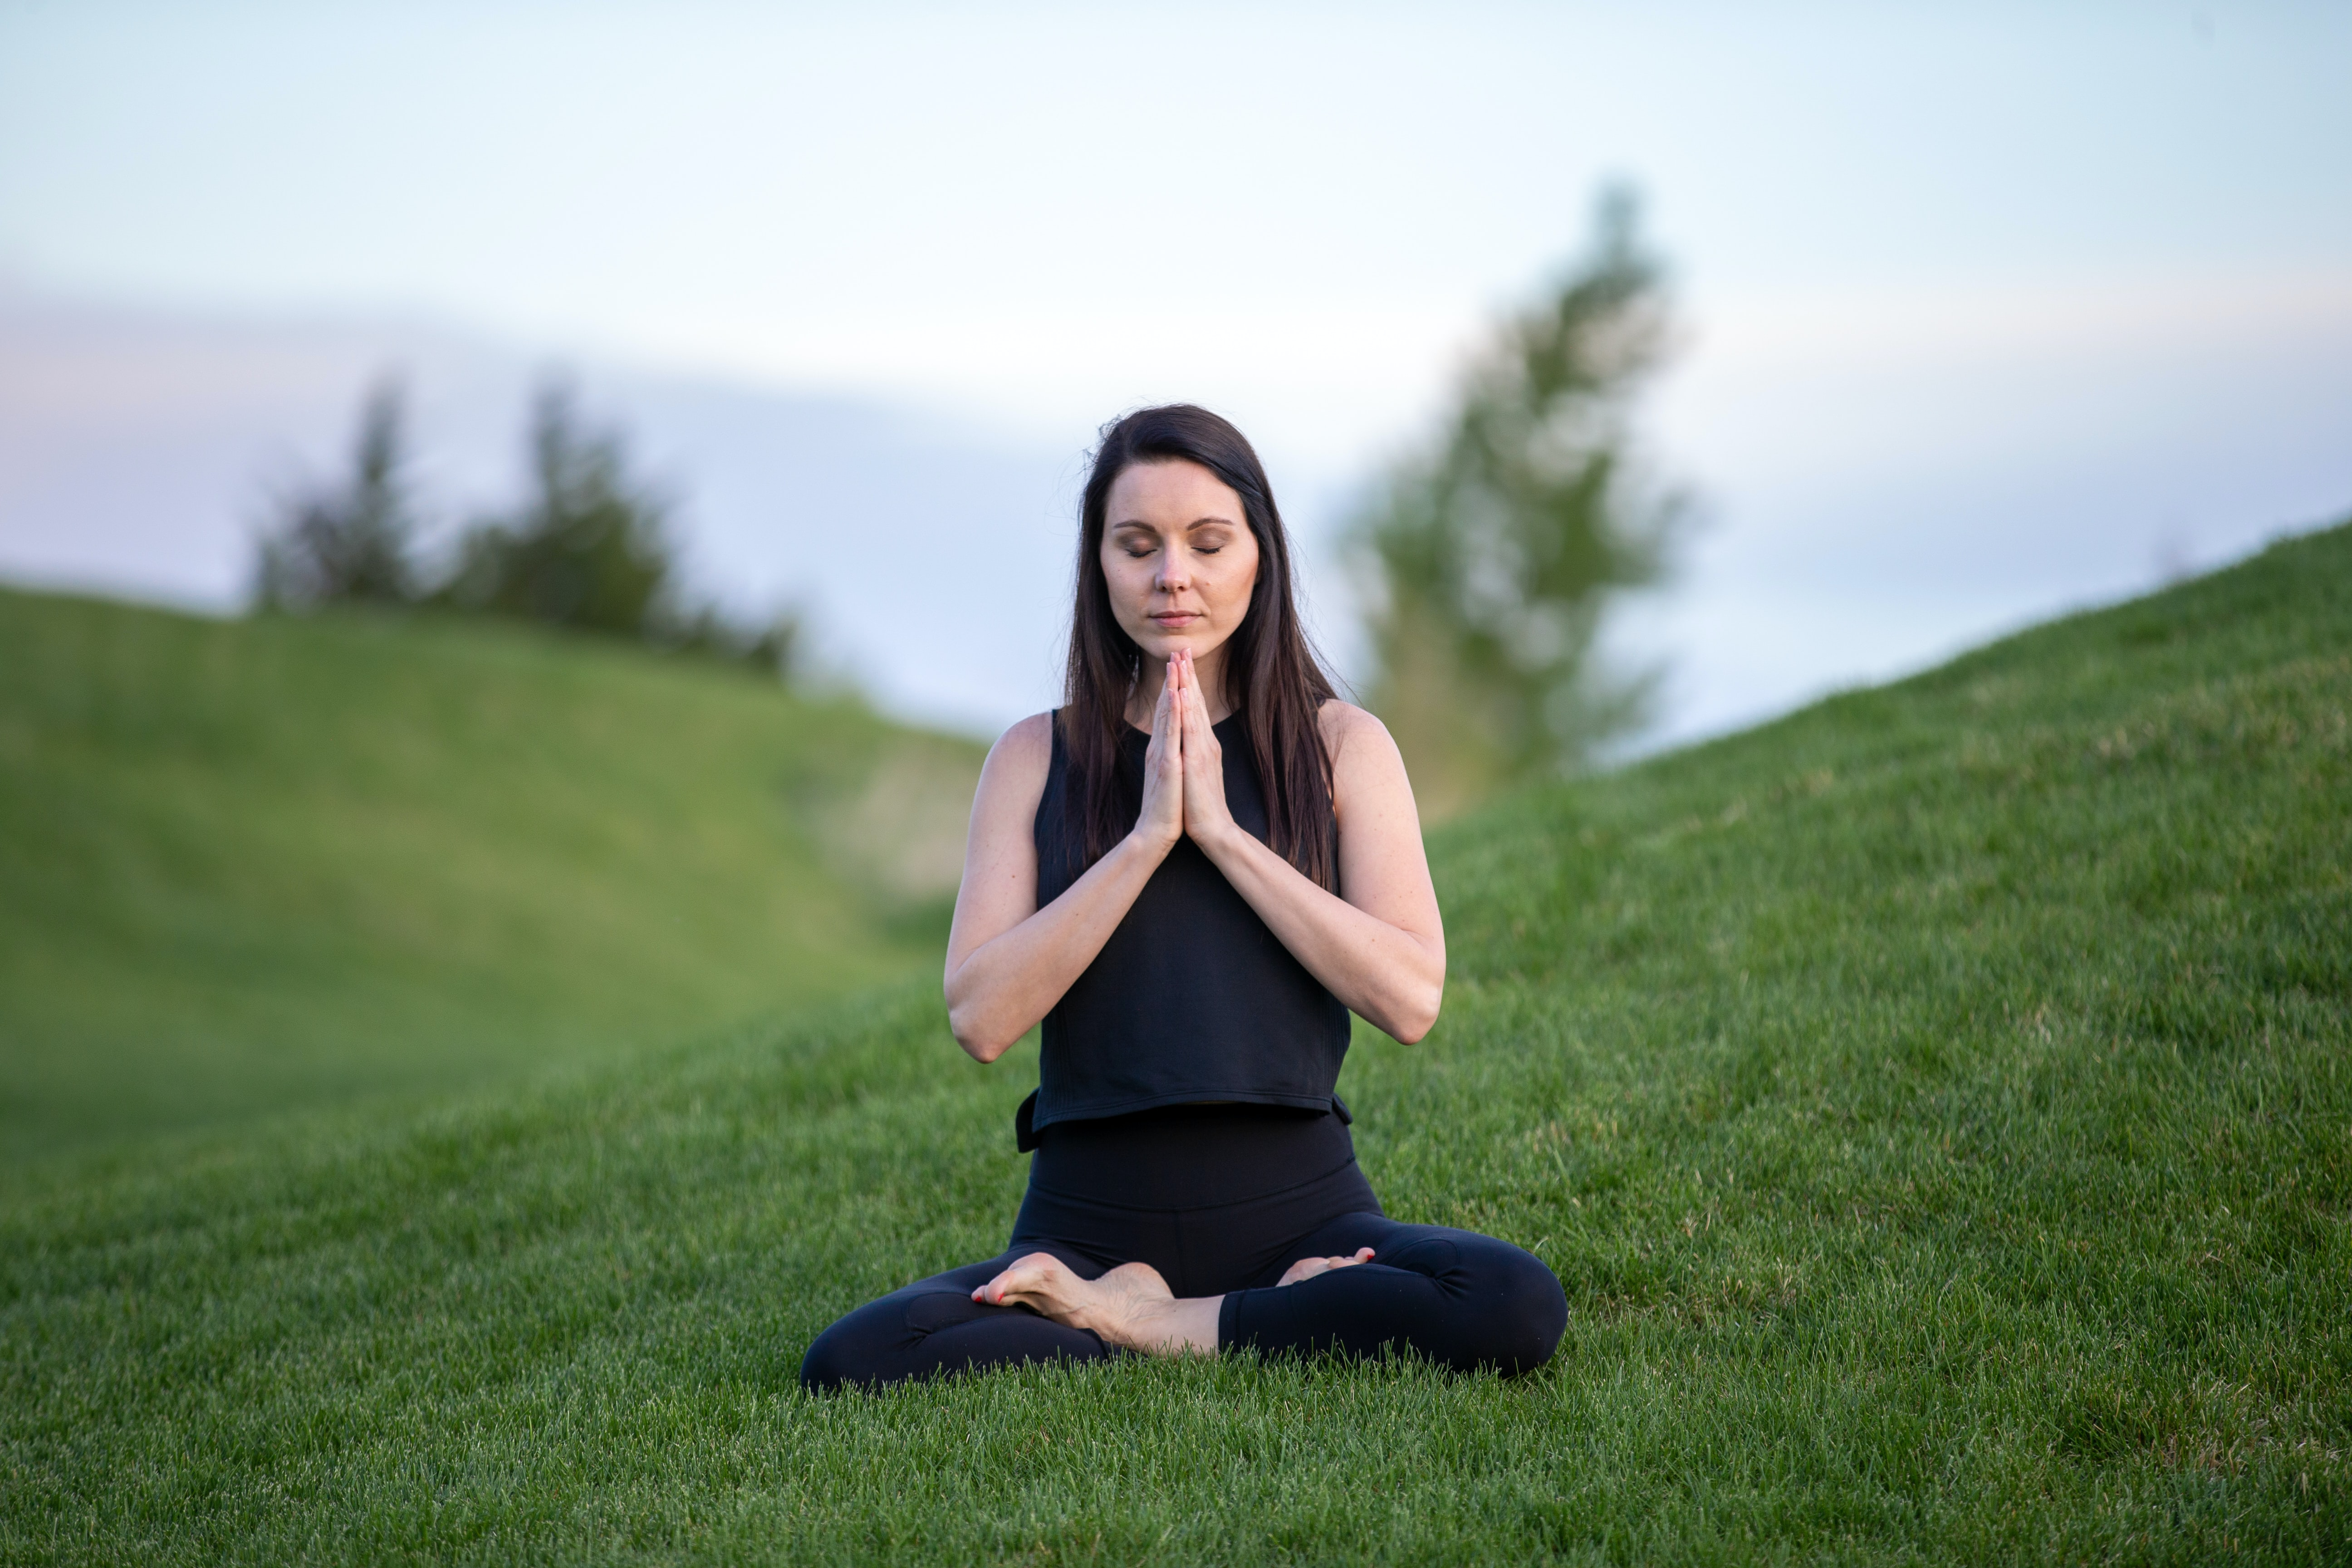 Woman meditating in field with crossed legs and prayer hands.